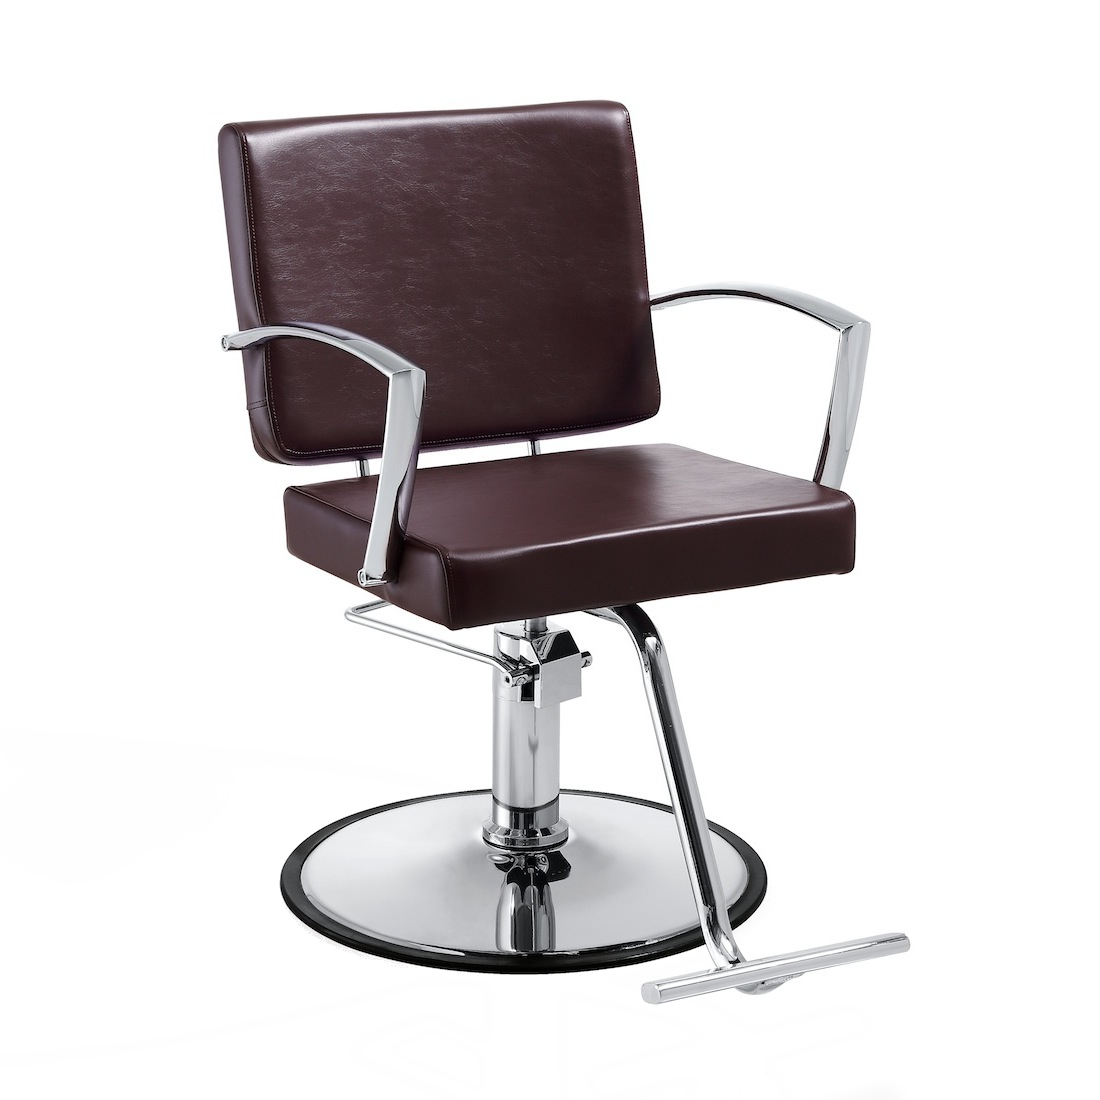 Duke Brown SC-DUK-010 Kaemark Salon Styling Chair + Free Shipping!  sc 1 st  ProHairTools.com & Duke SAV-617 Salon Styling Chair In Mocha or White + Free Shipping